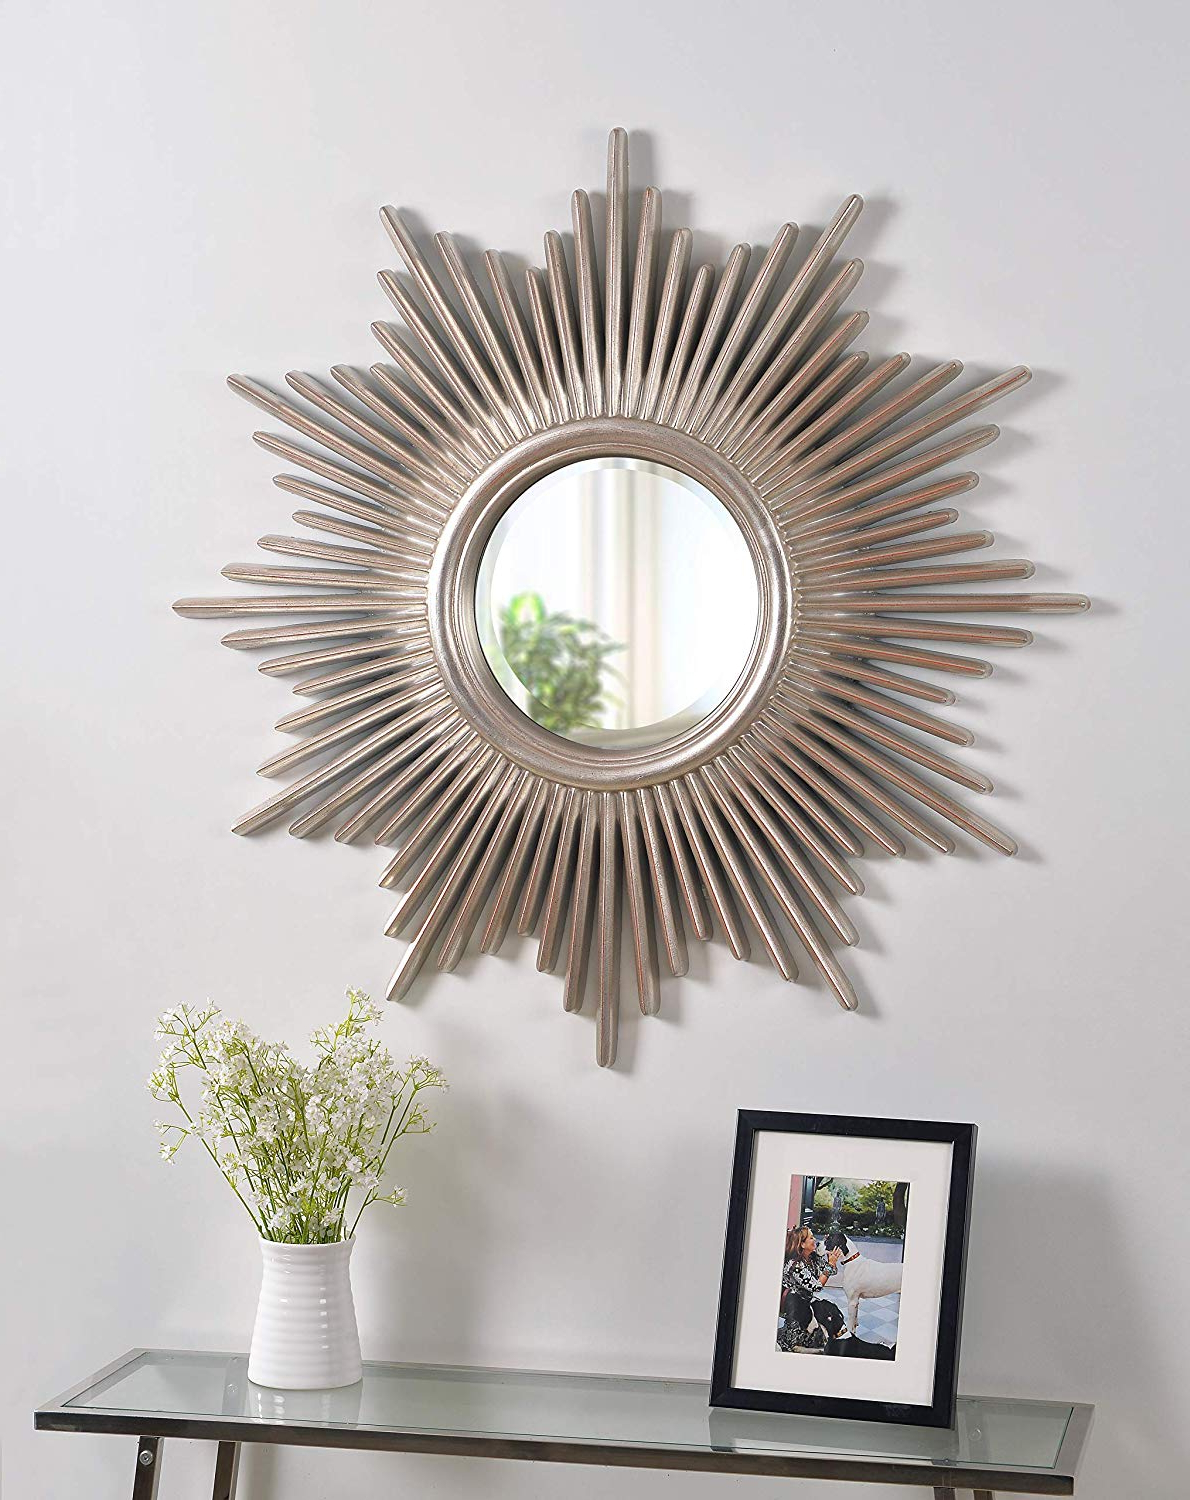 Fashionable Point Reyes Molten Round Wall Mirrors Intended For Kenroy Home Reyes Wall Mirror, 36 Inch Height, 36 Inch Diameter, (View 10 of 20)